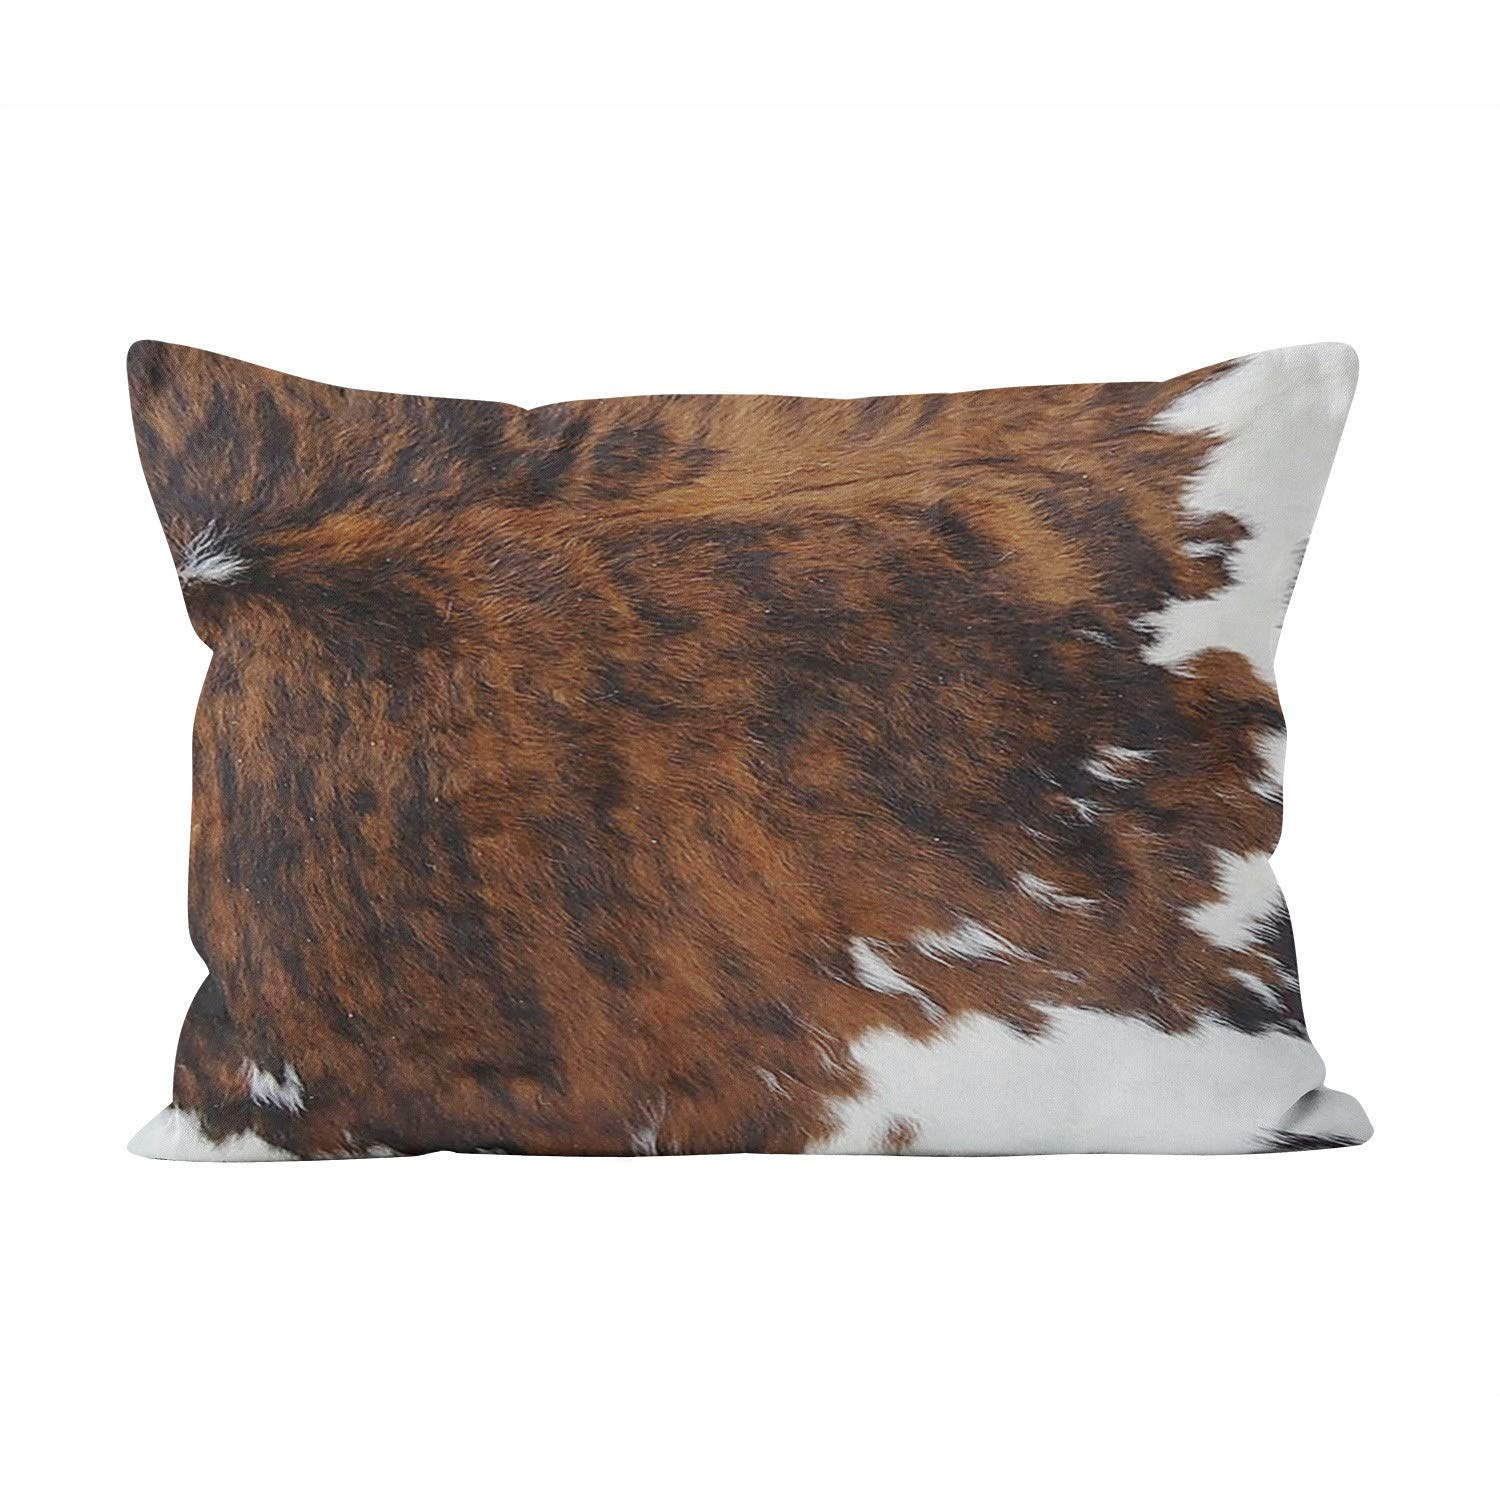 Skully Hot Lumbar Leather Cowhide Brown Black White Fabric Hidden Zipper Home Decorative Rectangle Throw Pillow Cover Cushion Case 12x24 inch One Side Design Printed Pillowcase